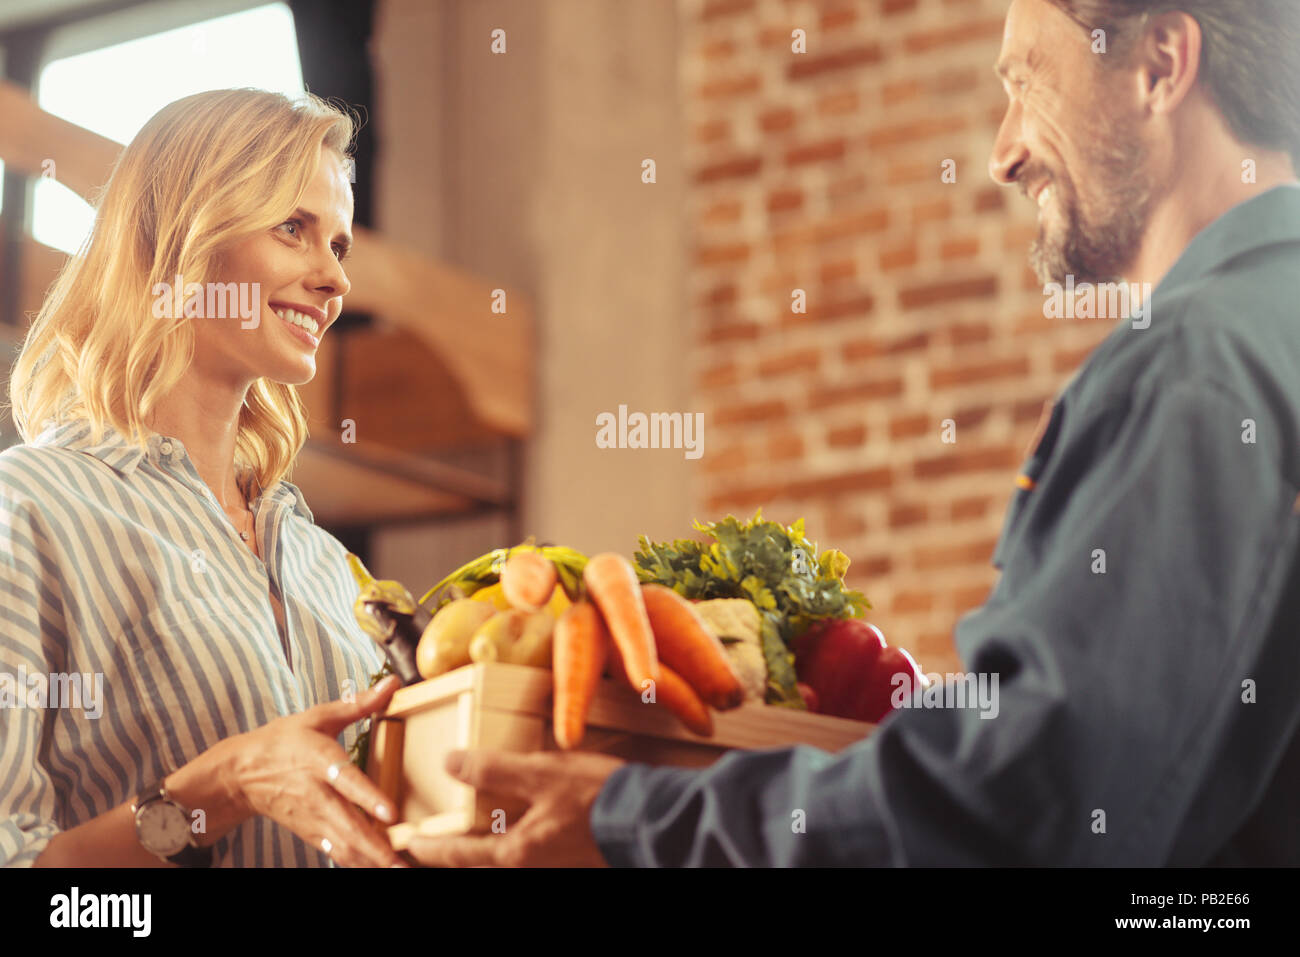 Satisfied client smiling to deliveryman - Stock Image